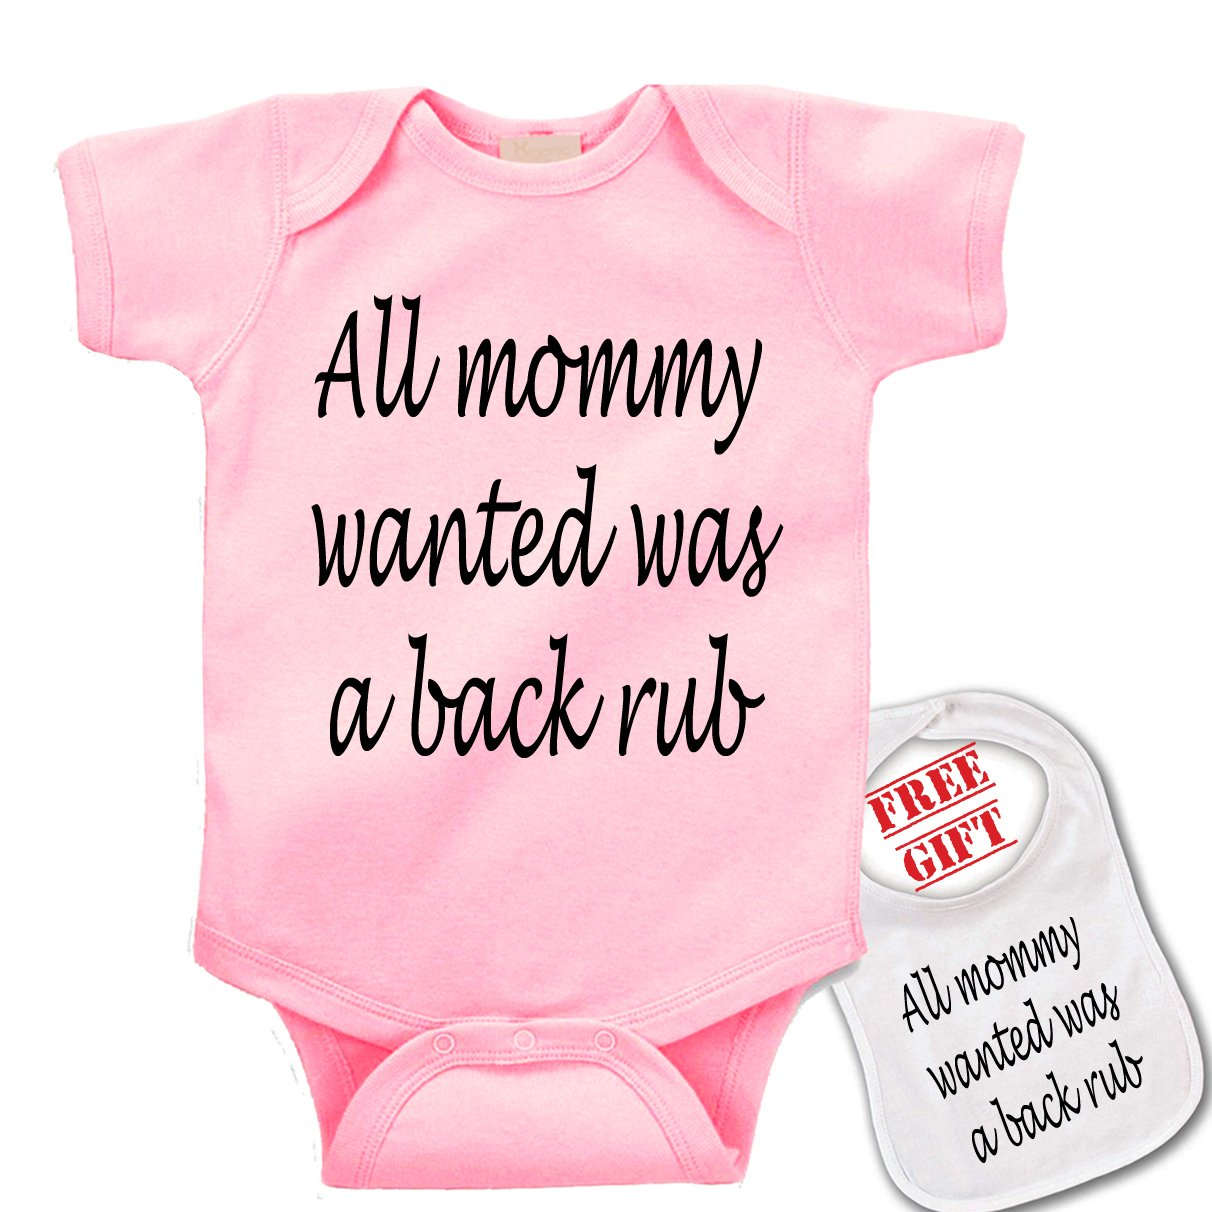 All Mommy Wanted was a backrub -Cute custom Baby bodysuit onesie & matching bib 88u